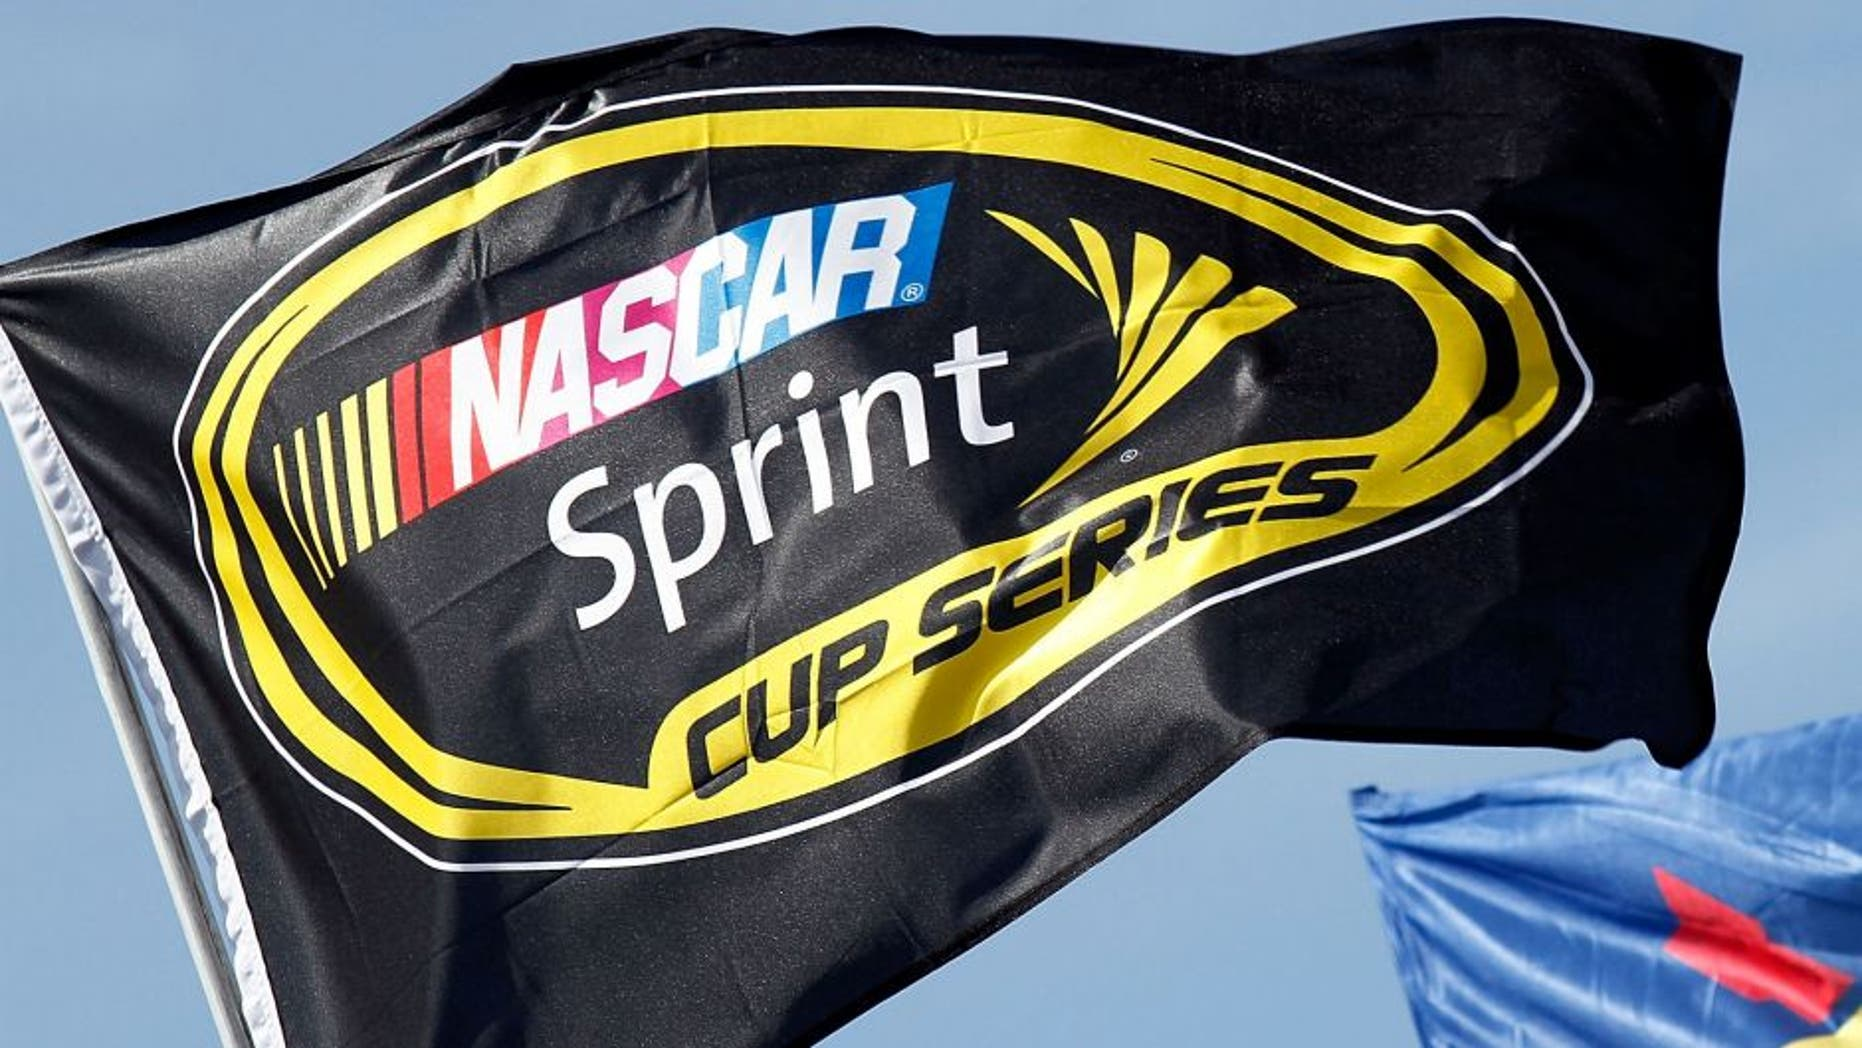 DOVER, DE - MAY 16: The NASCAR Sprint Cup Series Flag and Sunoco Flag during the NASCAR Sprint Cup Series Autism Speaks 400 at Dover International Speedway on May 16, 2010 in Dover, Delaware. (Photo by Jason Smith/Getty Images for NASCAR)